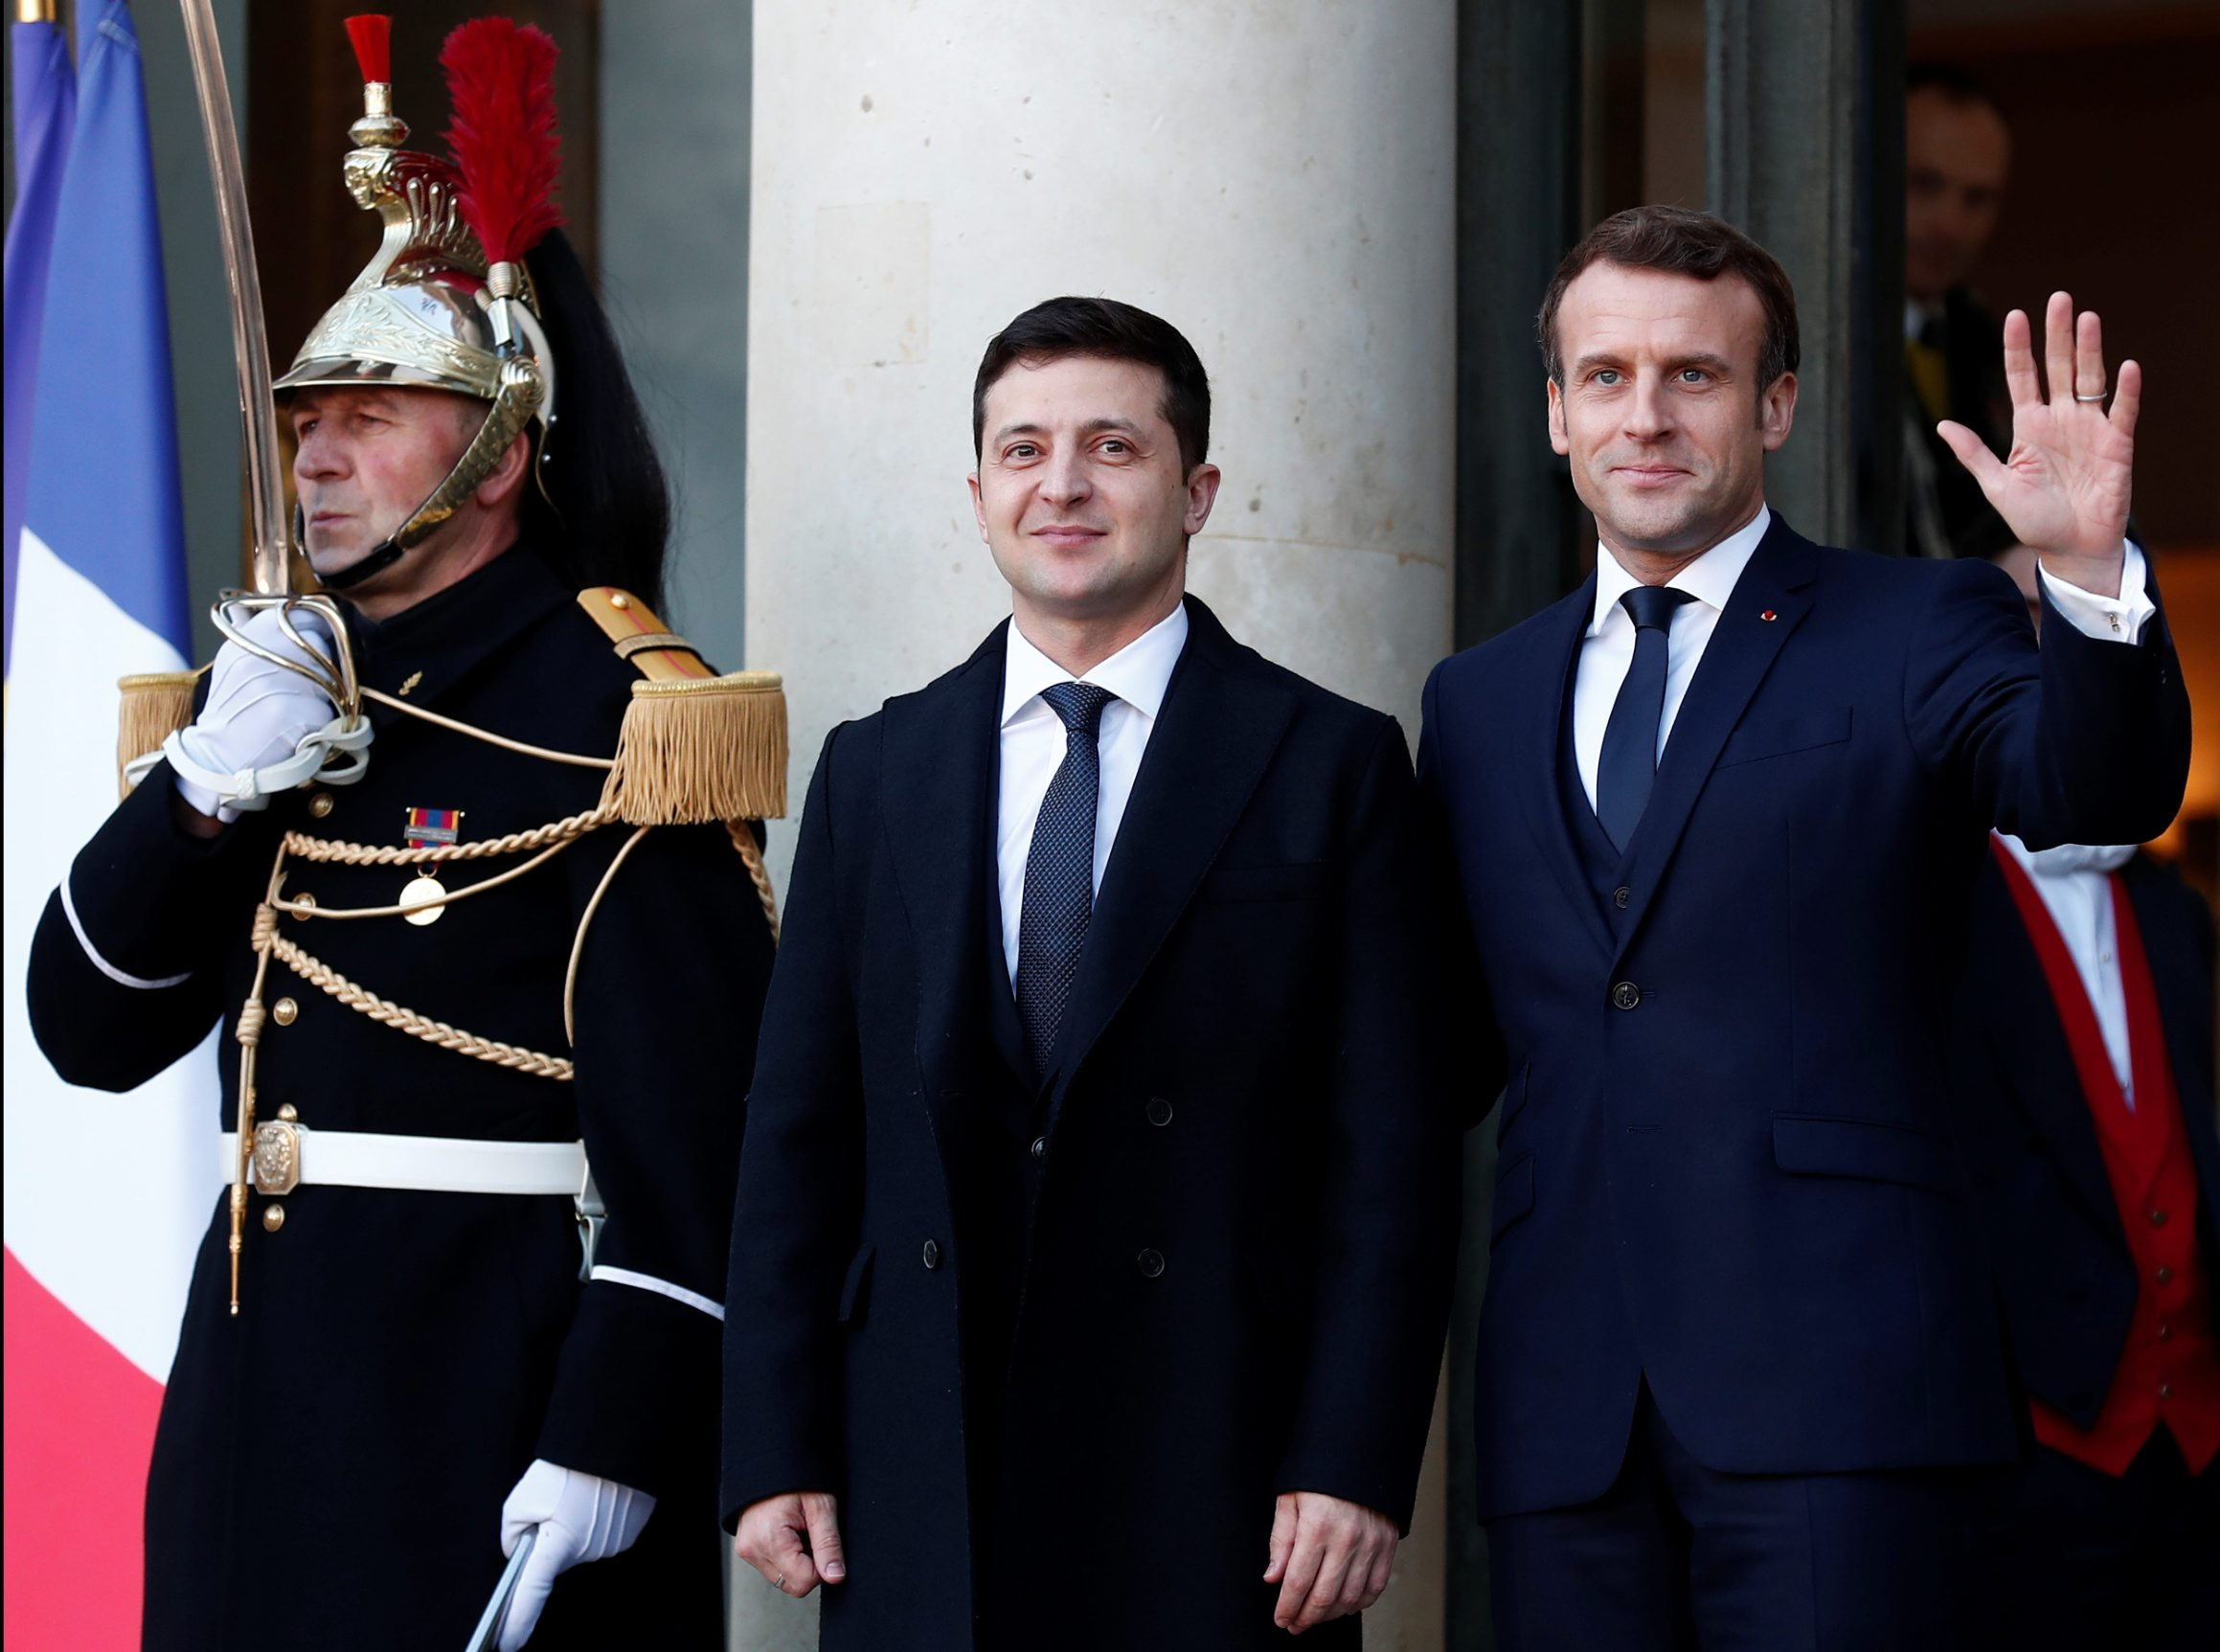 French President Emmanuel Macron (R) greets Ukrainian President Volodymyr Zelensky (L) as he arrives to attend a summit on Ukraine at the Elysee Palace in Paris, France December 9, 2019. German Chancellor Merkel, French President Macron, Ukrainian President Zelensky and Russian President Putin took part in the summit.  Ian Langsdon/Pool via REUTERS